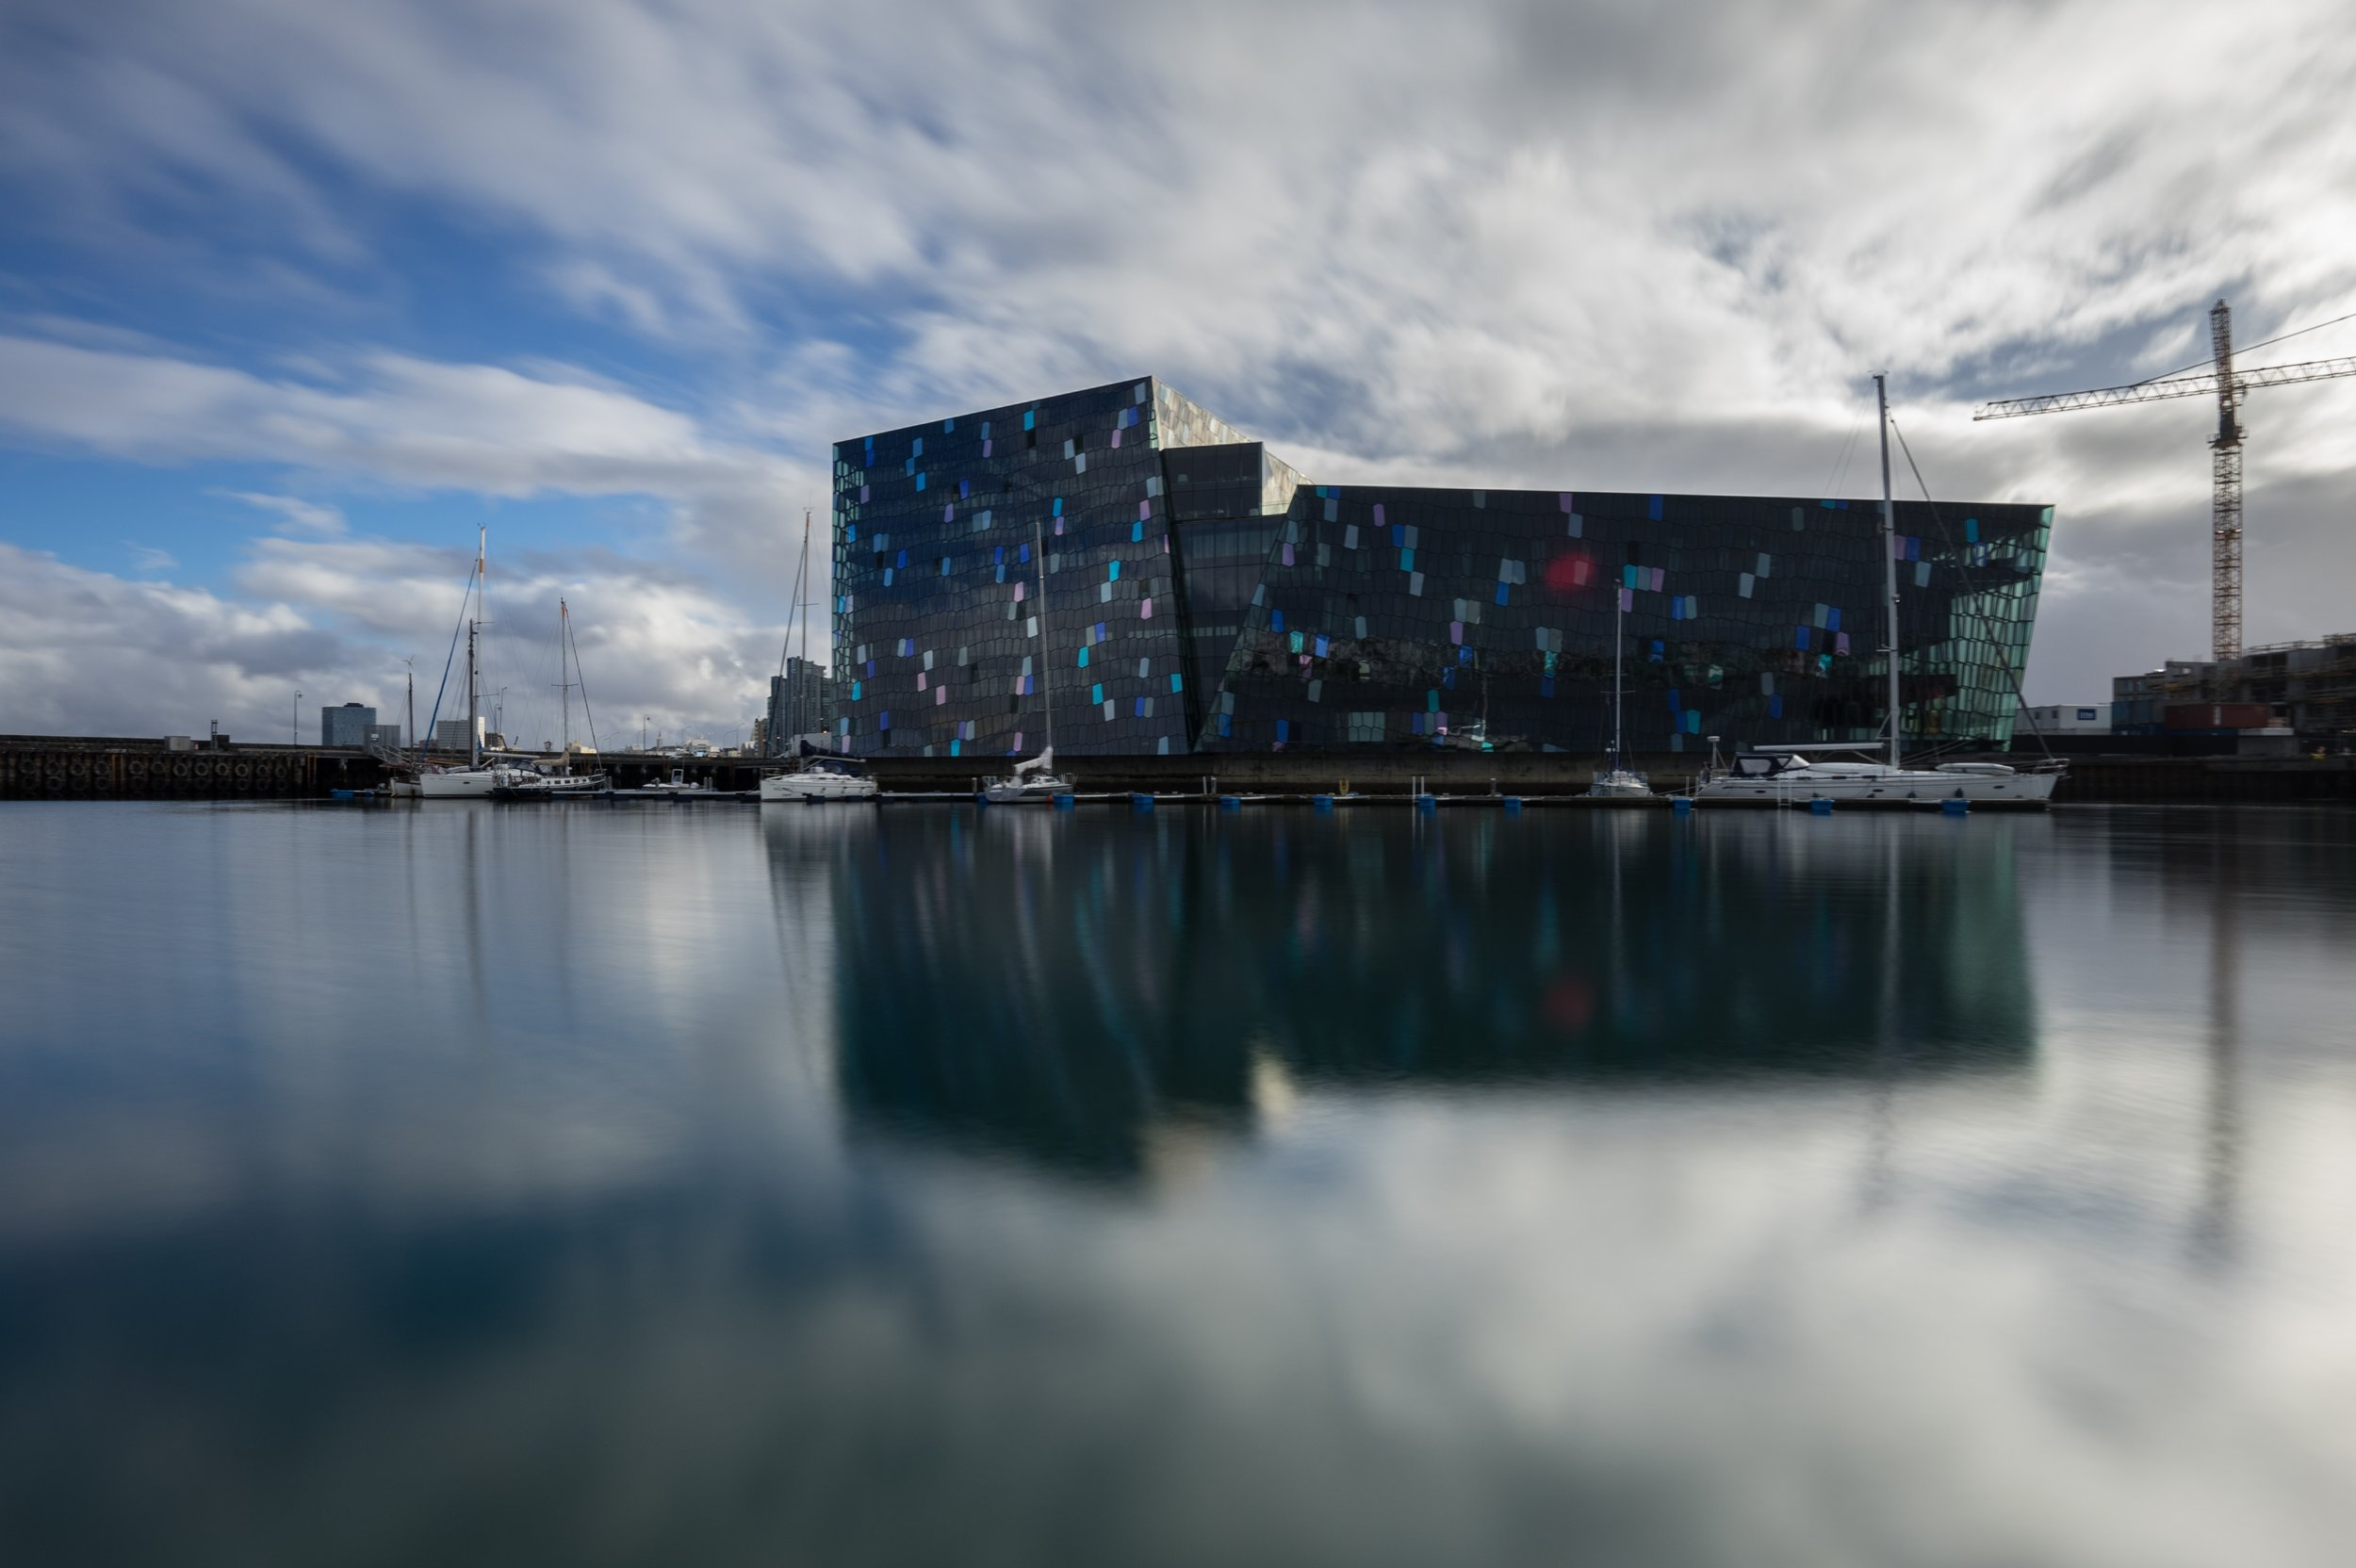 Picture 38 Backside of the Concert hall Harpa in Reykjavik